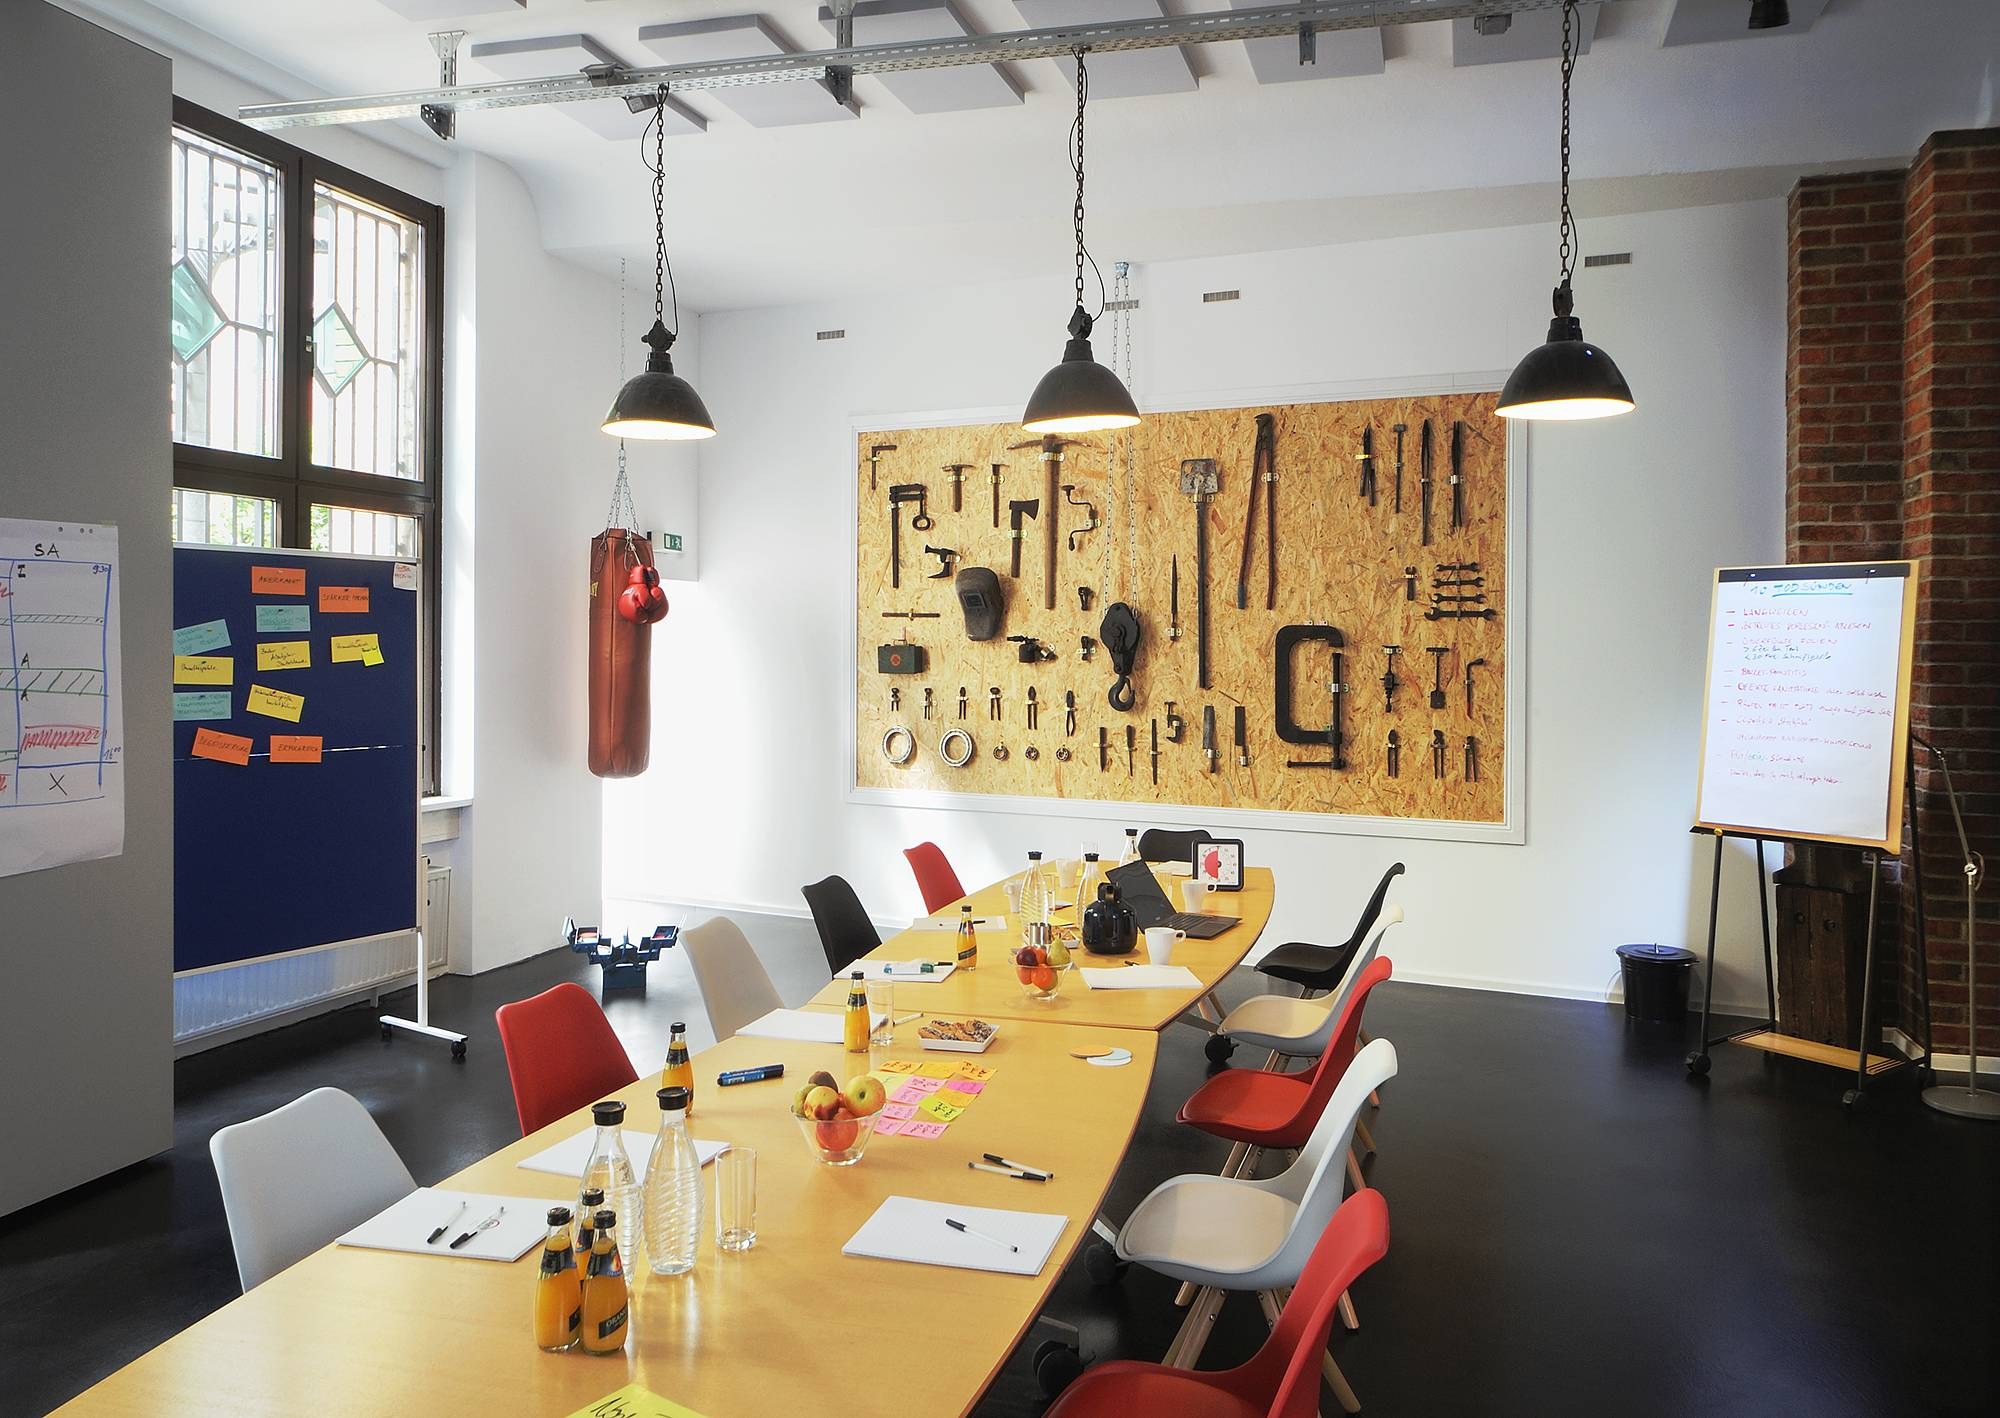 Meeet meeting room with tool wall and punch bag